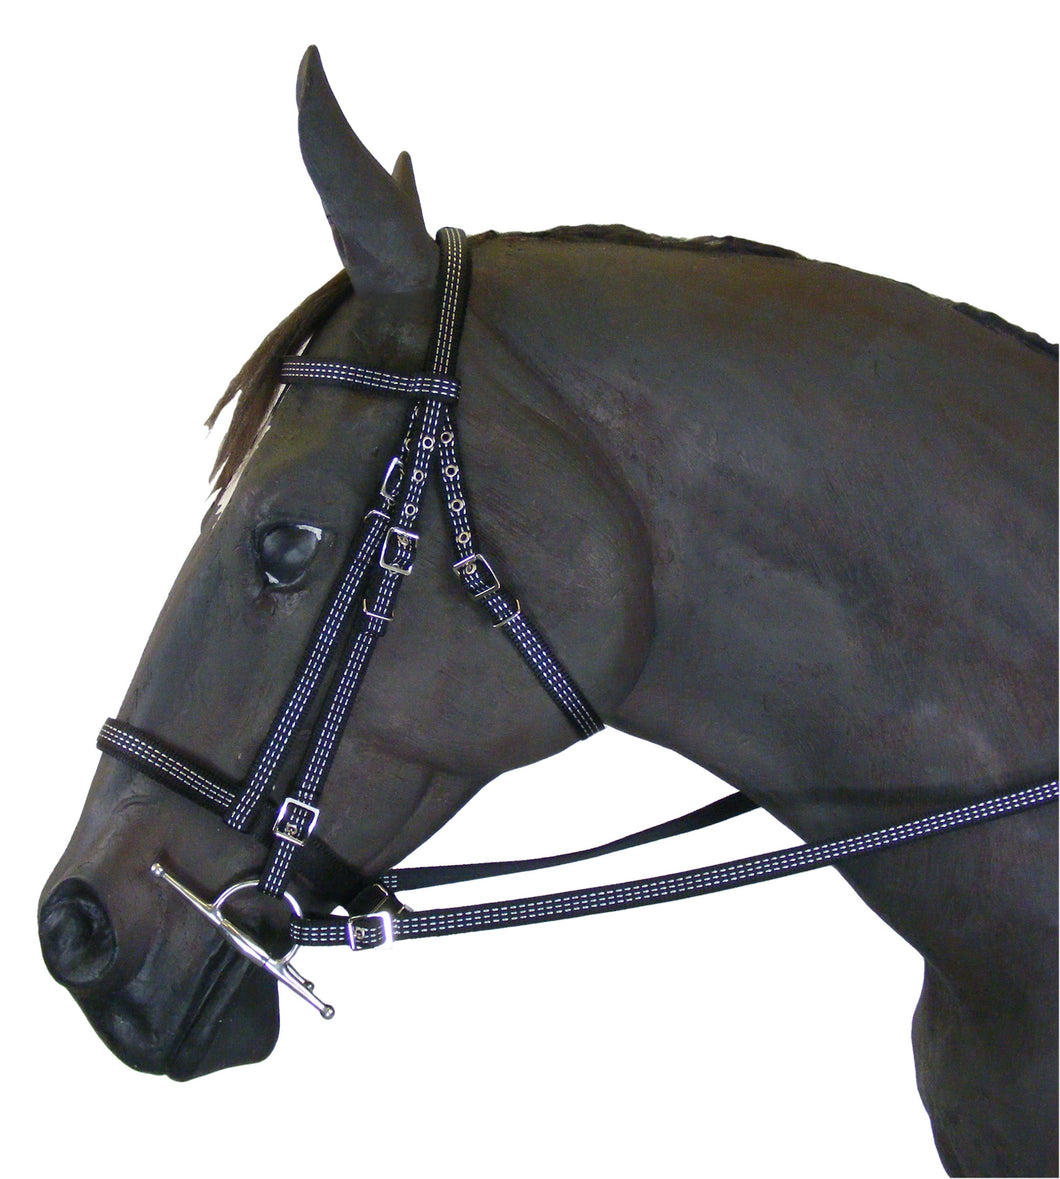 Reflective Bridle